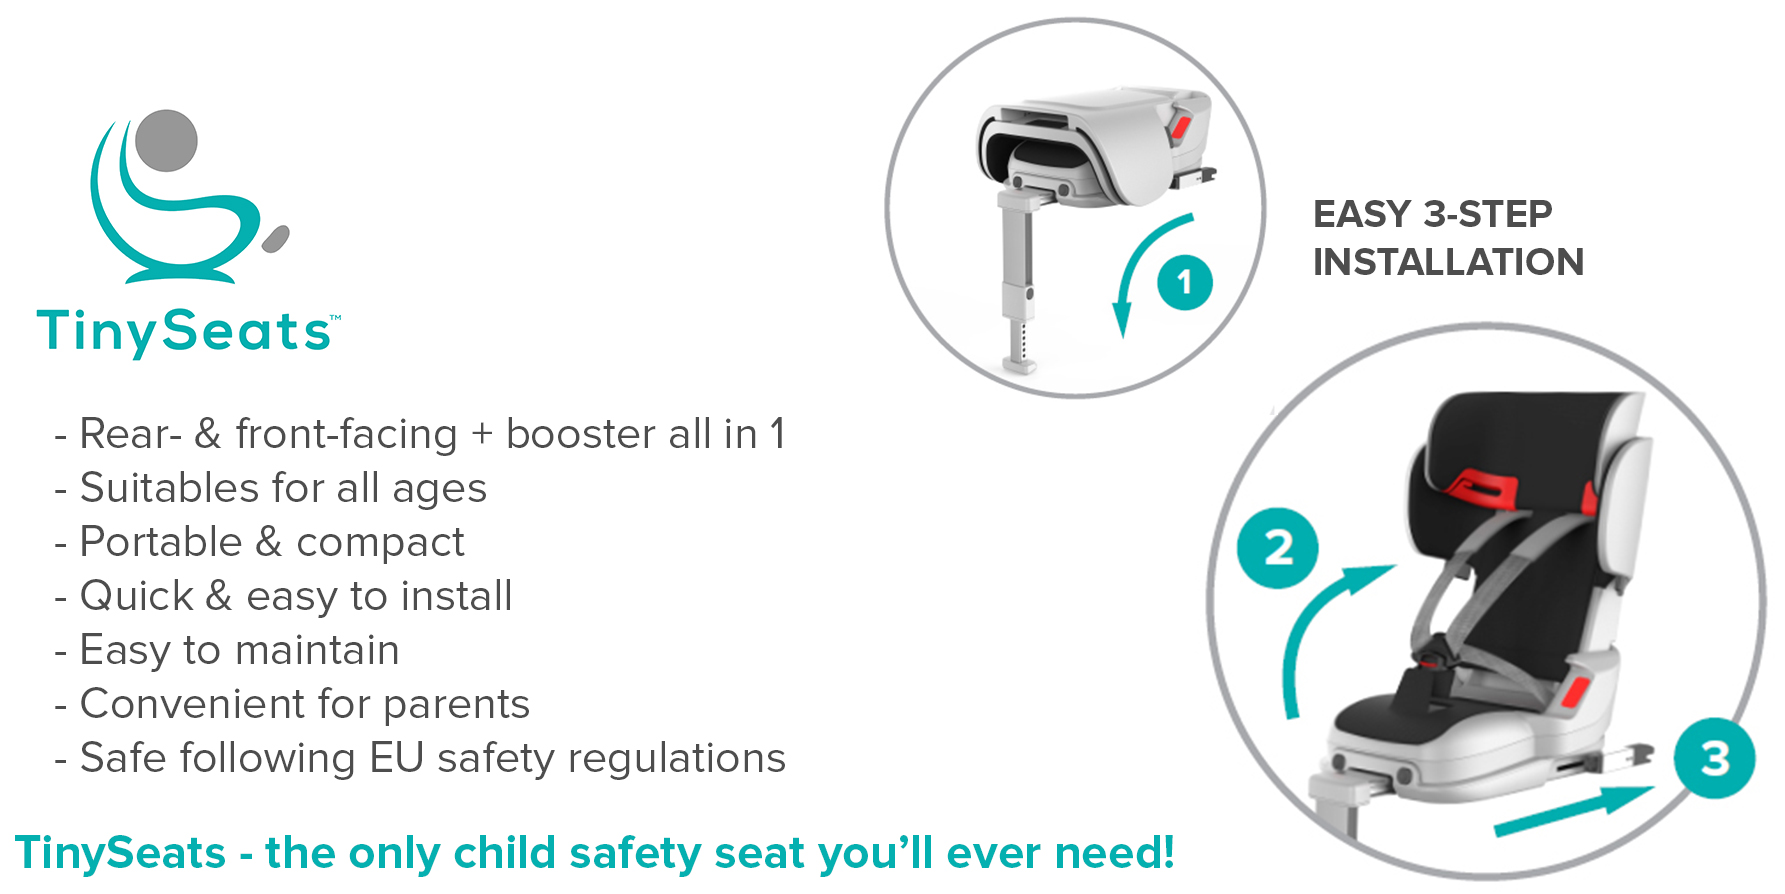 Why TinySeats? What are the benefits?